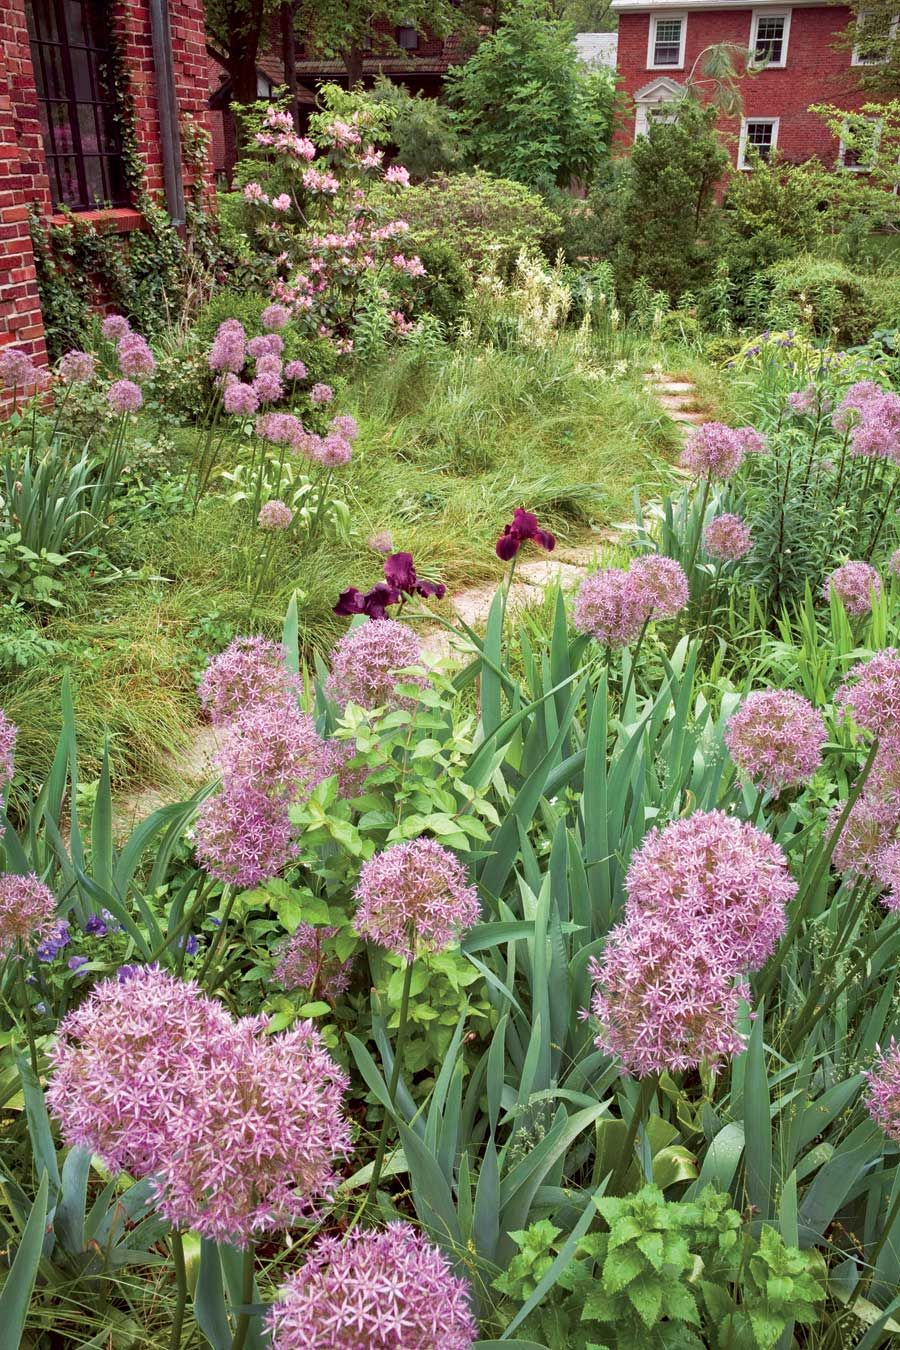 Low Maintenance Landscaping Replace Your Lawn With Grass Alternatives Green Homes Natural Home Garden Lawn Alternatives Rock Garden Landscaping Low Maintenance Landscaping